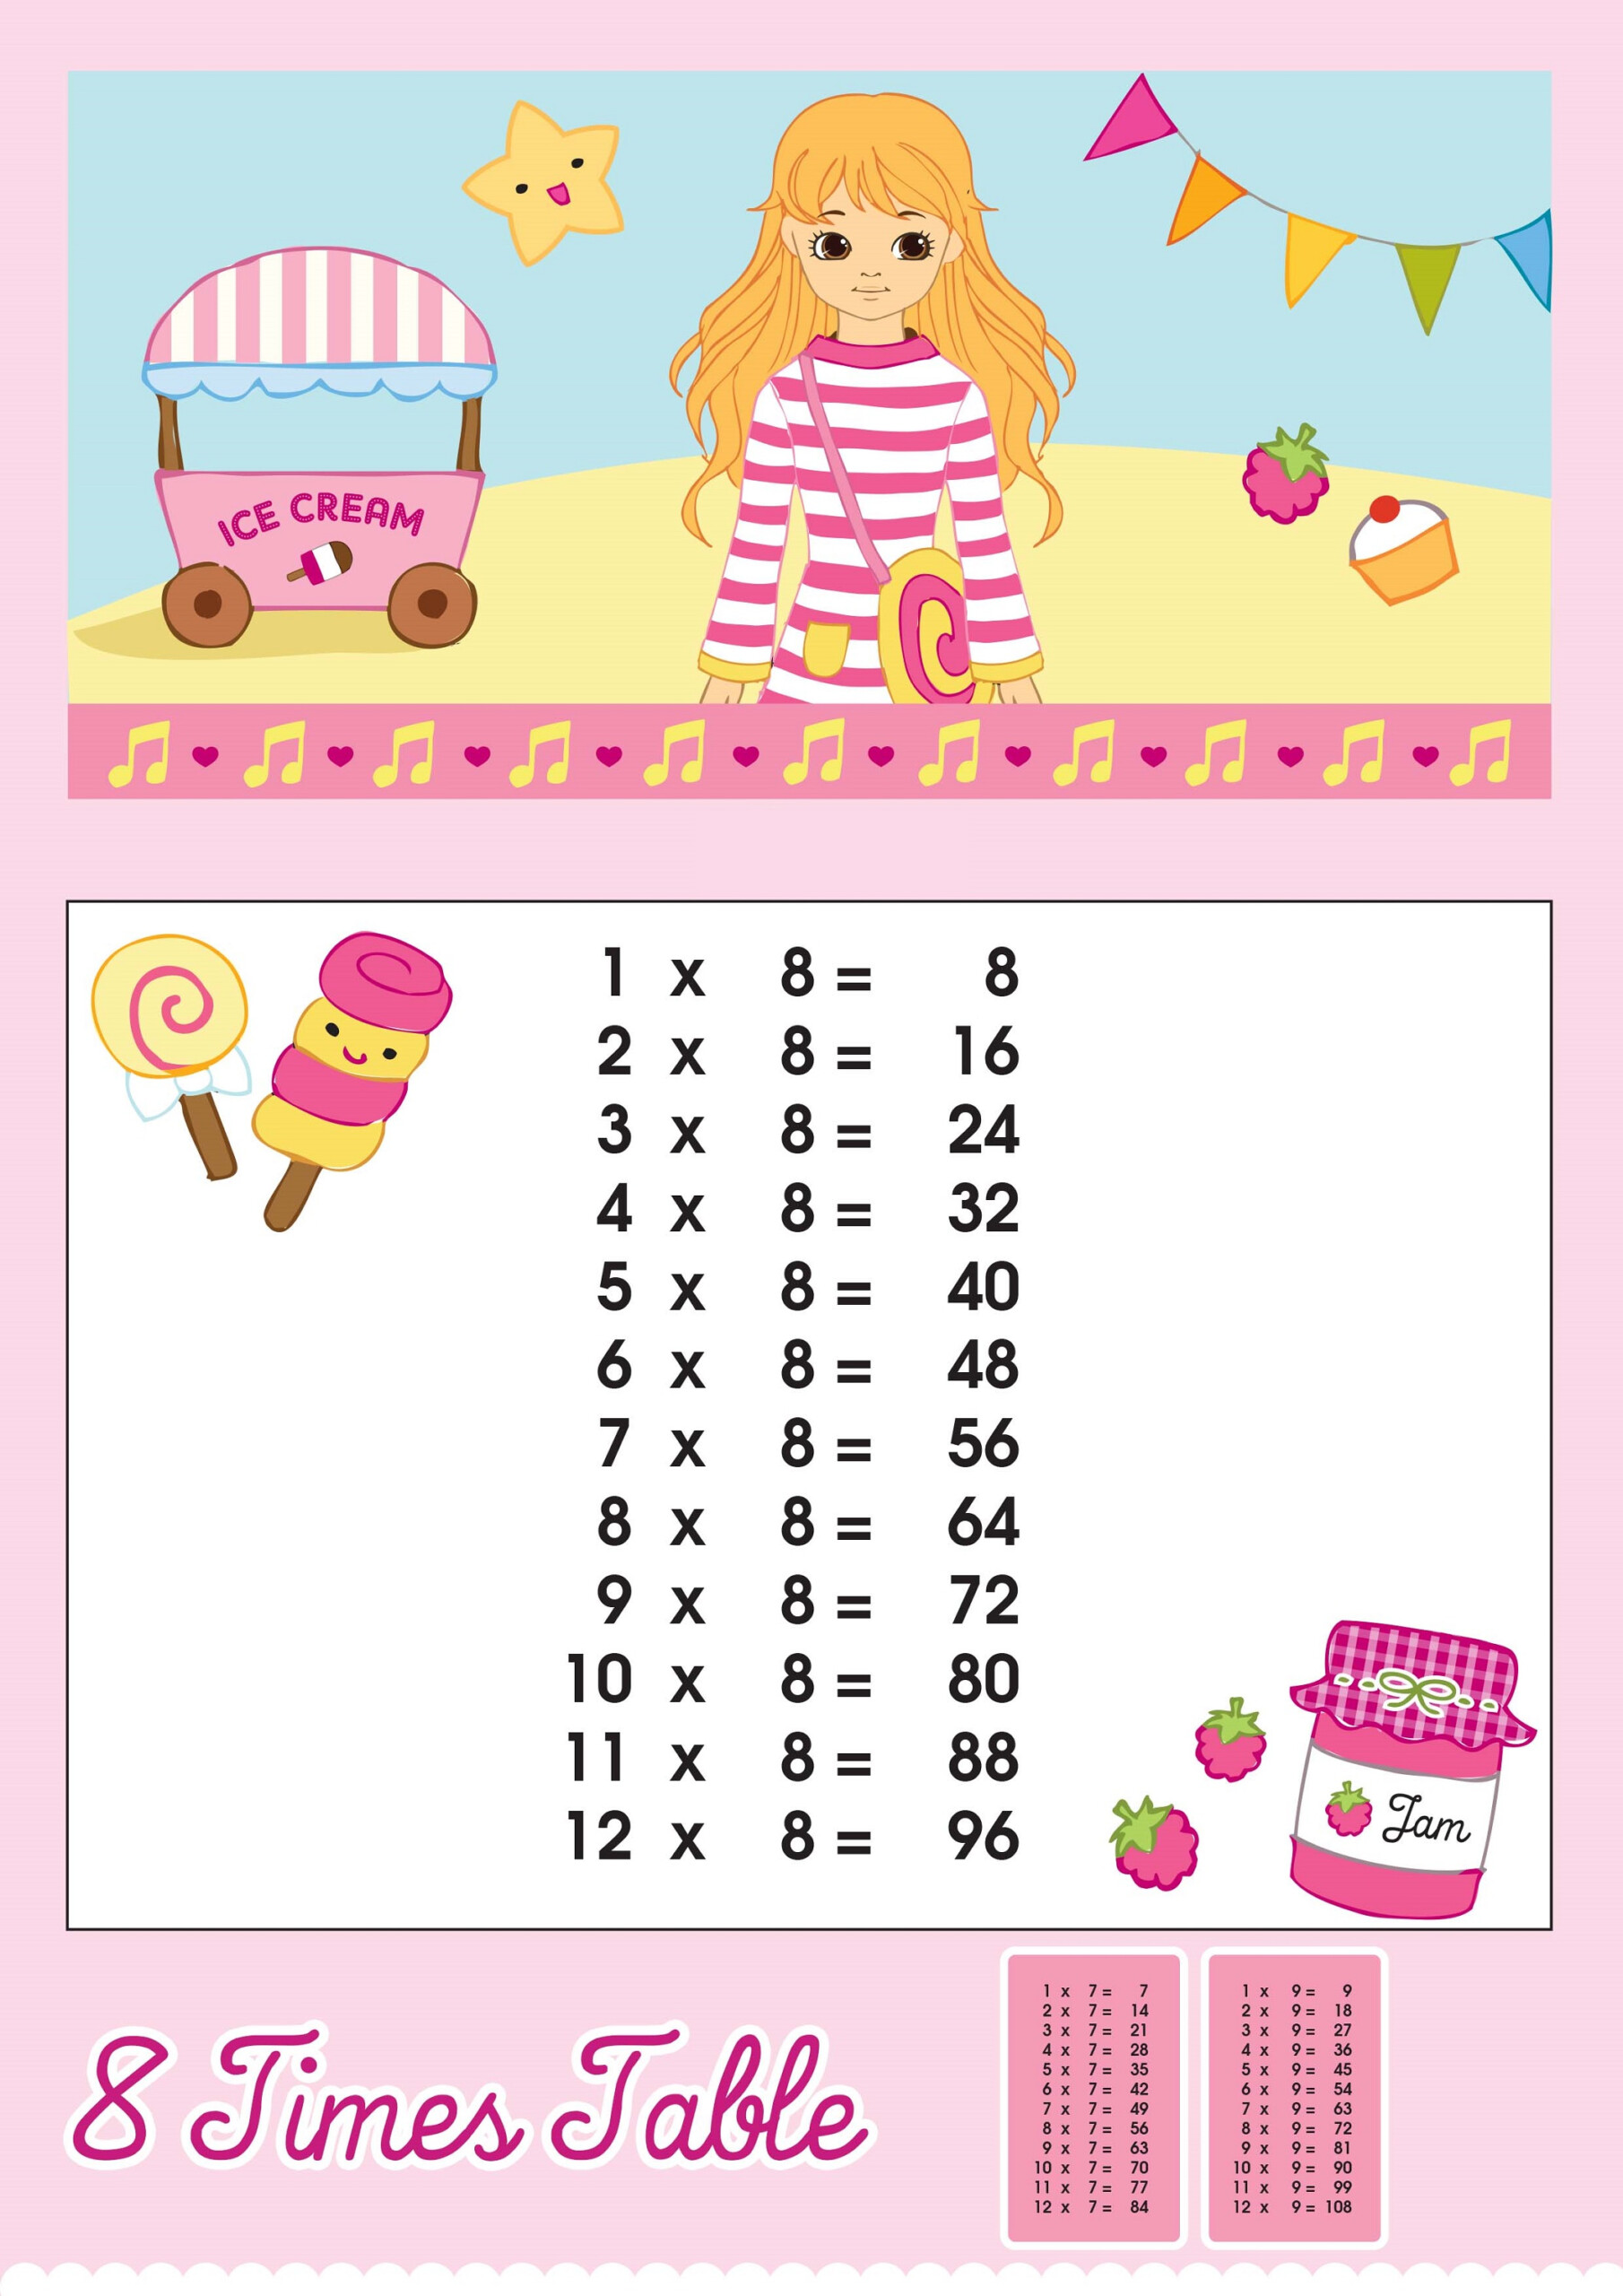 8 Times Table Charts To Print Activity Shelter